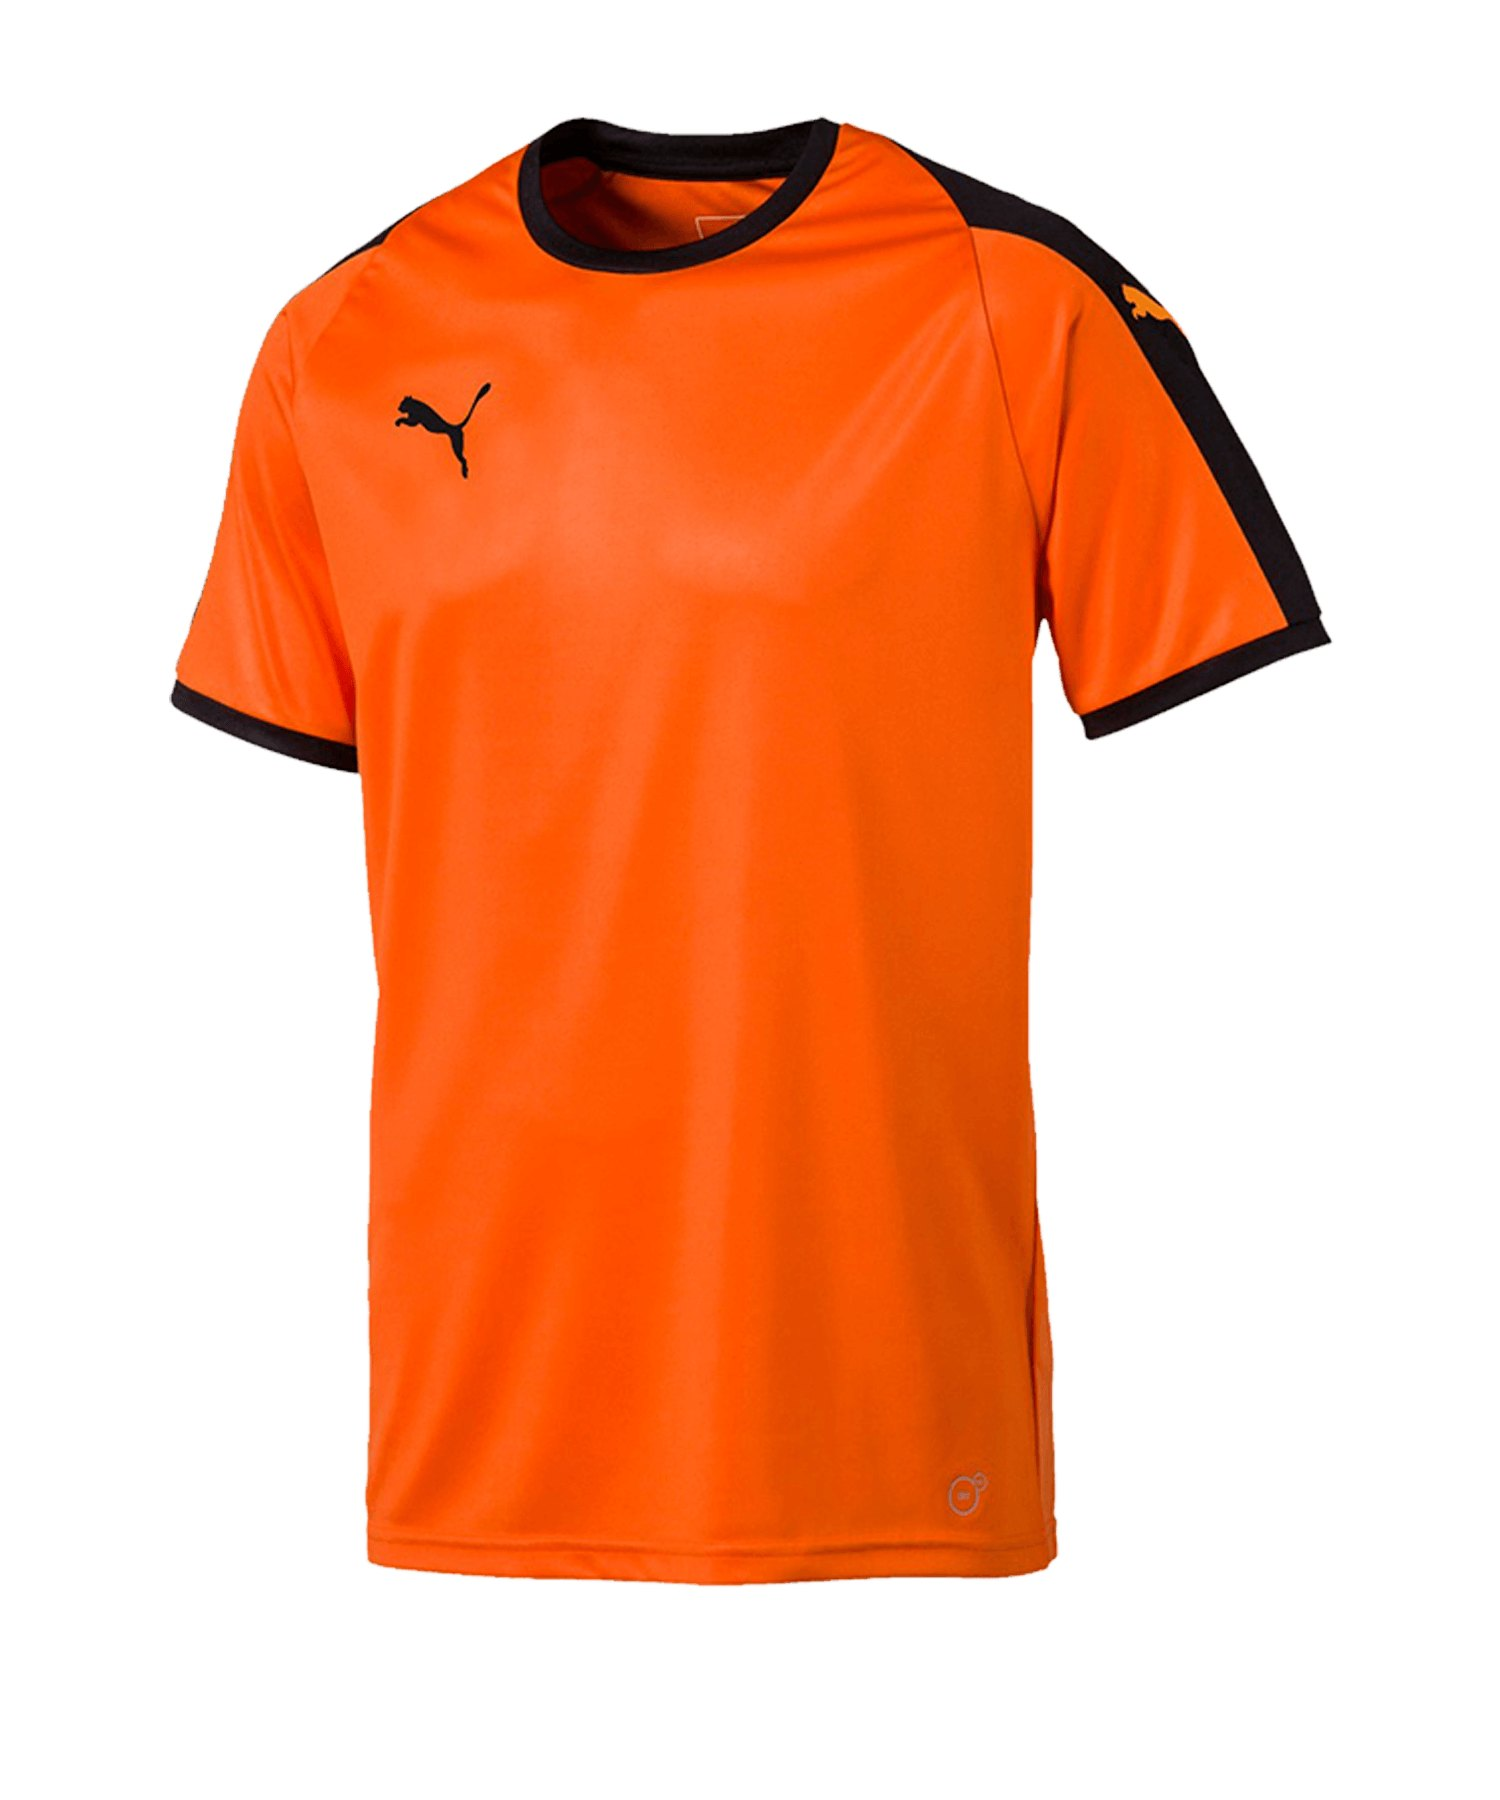 PUMA LIGA Trikot kurzarm Orange Schwarz F08 - orange